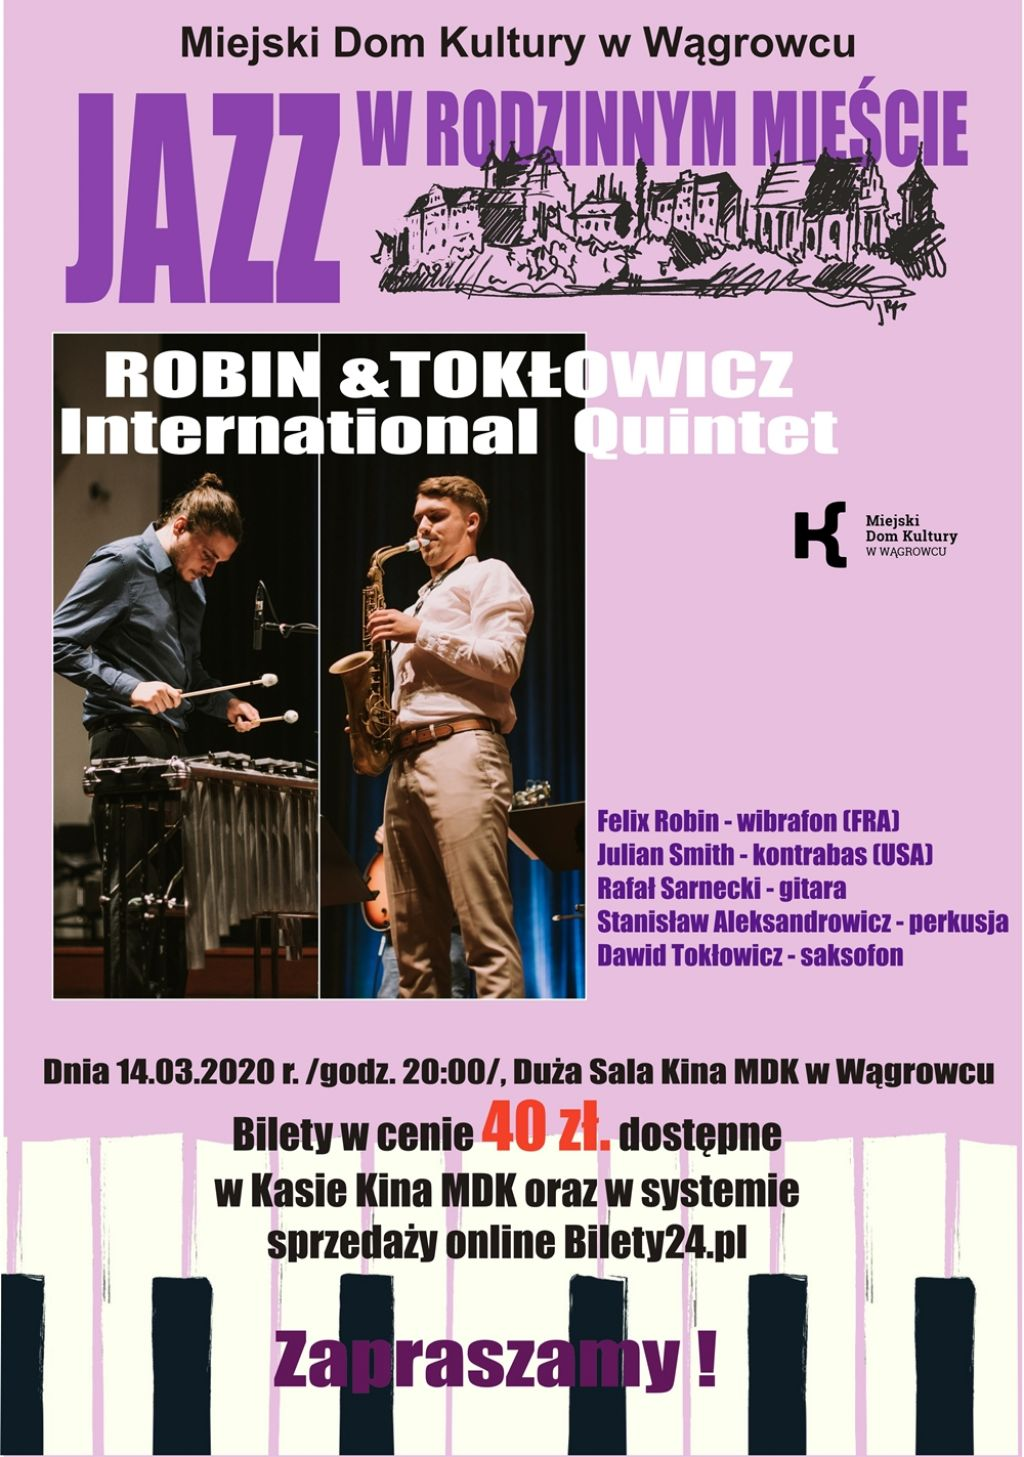 ROBIN & TOKŁOWICZ International Quintet